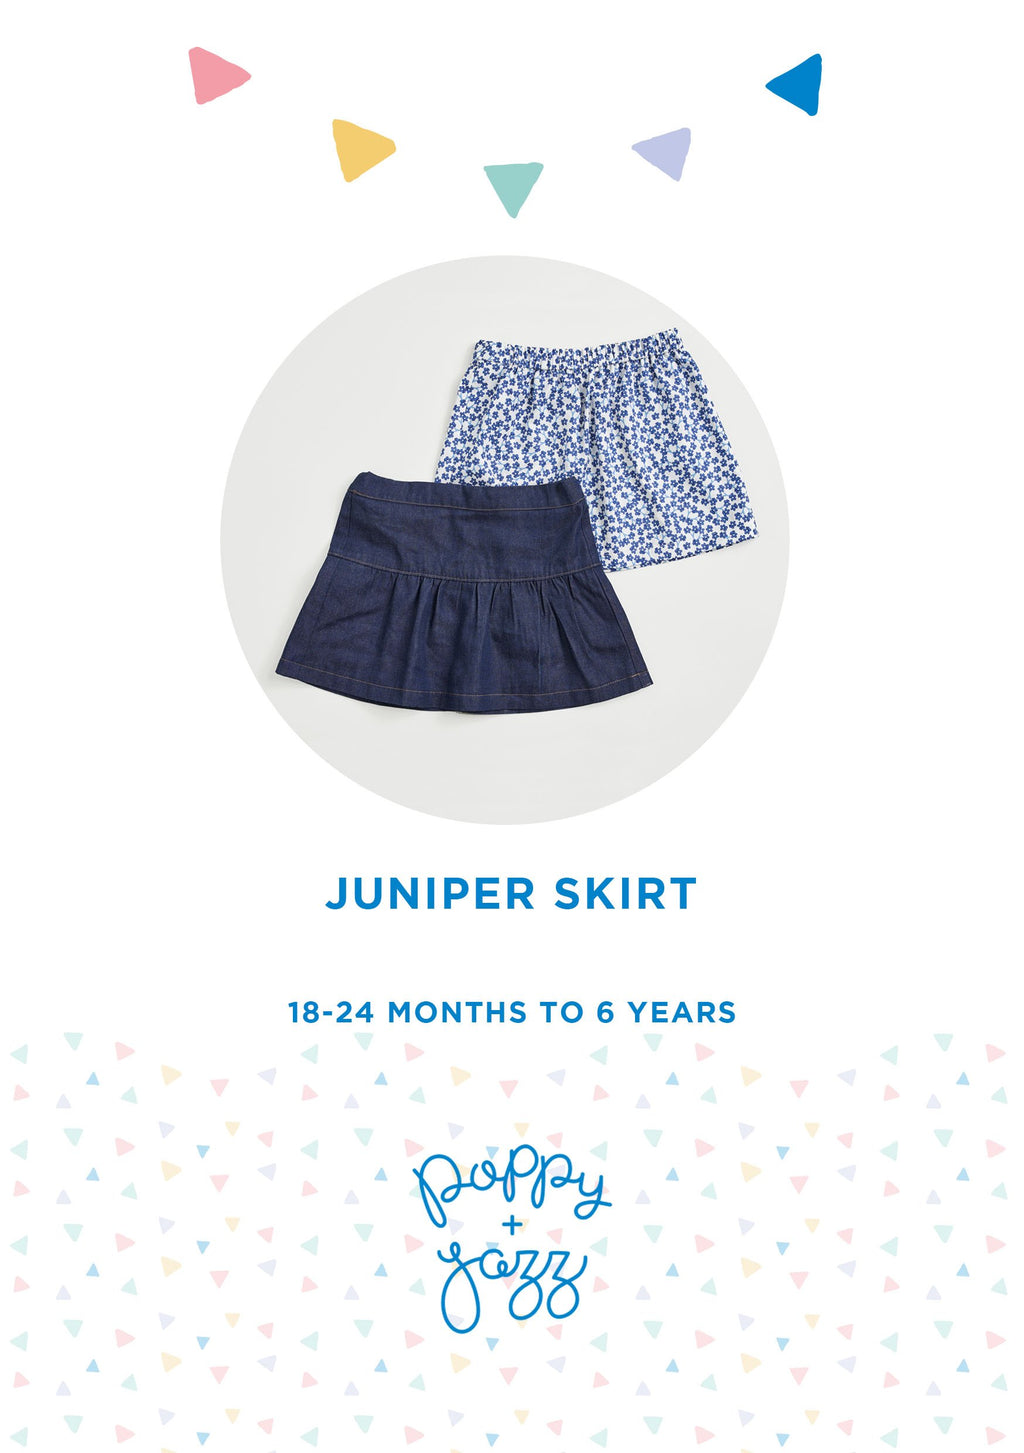 Sew Over It Poppy + Jazz | Juniper Skirt Pattern from Jaycotts Sewing Supplies